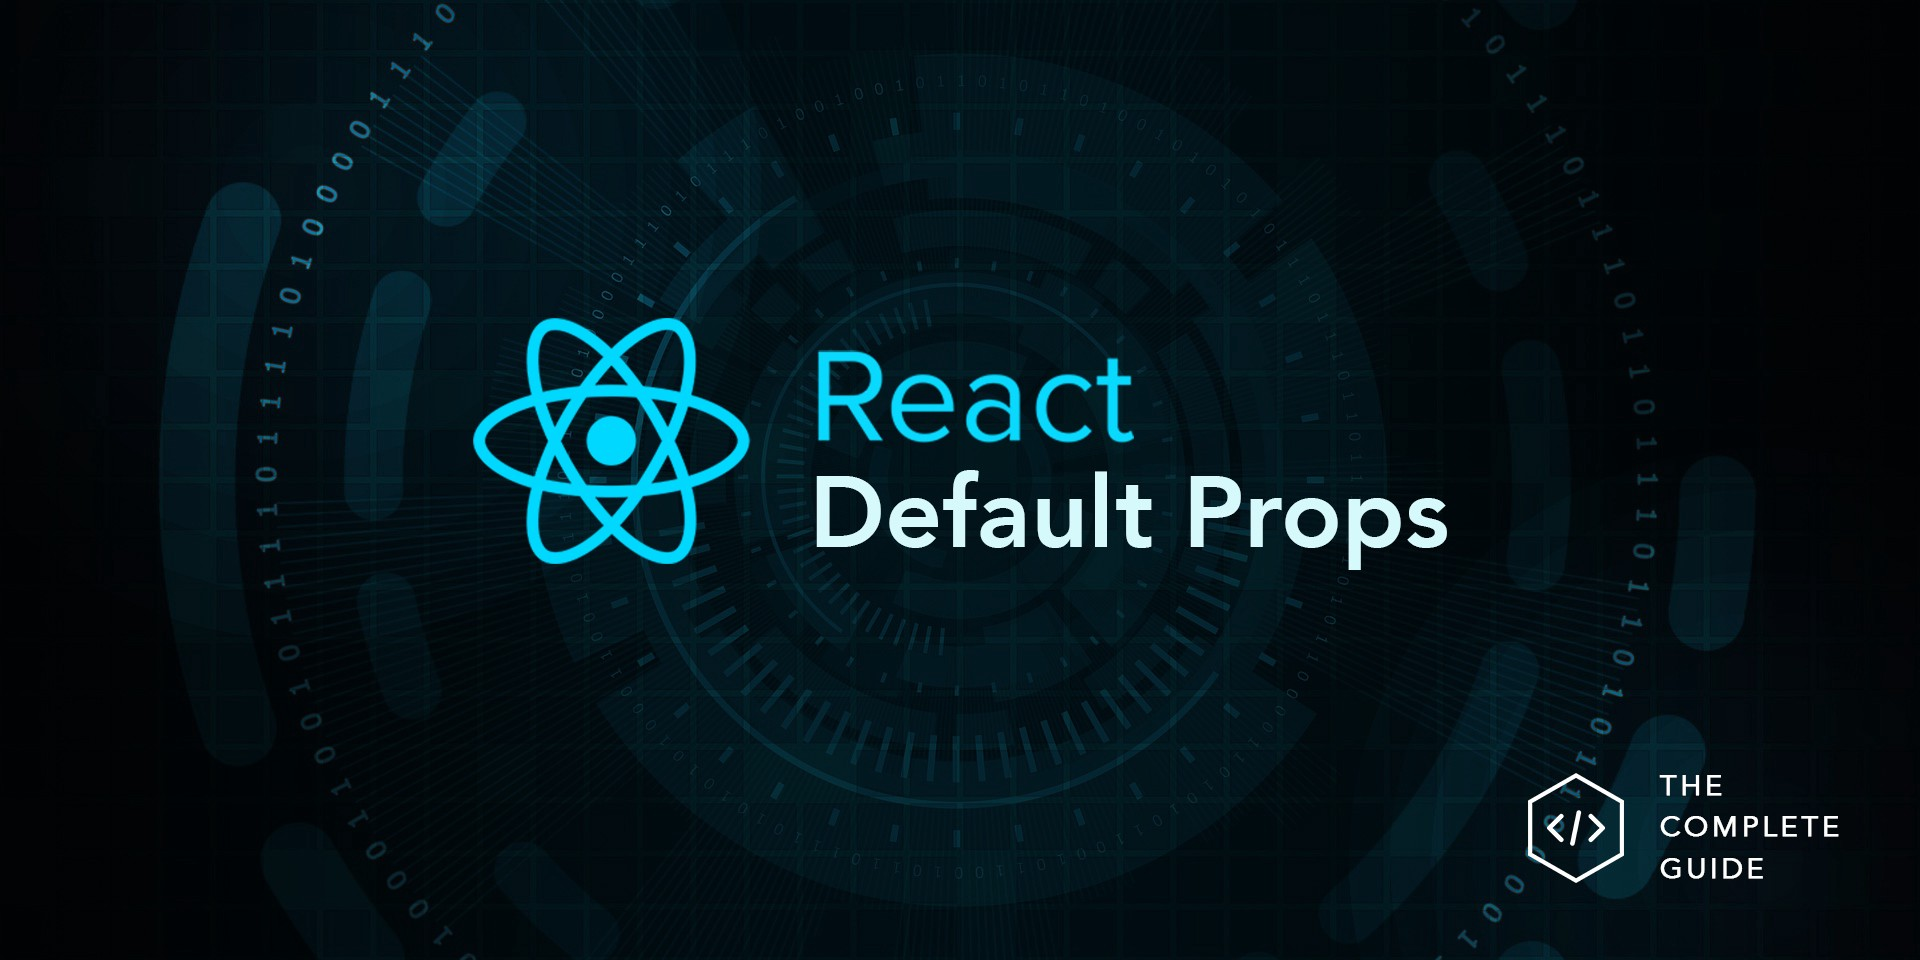 A complete guide to default props in React